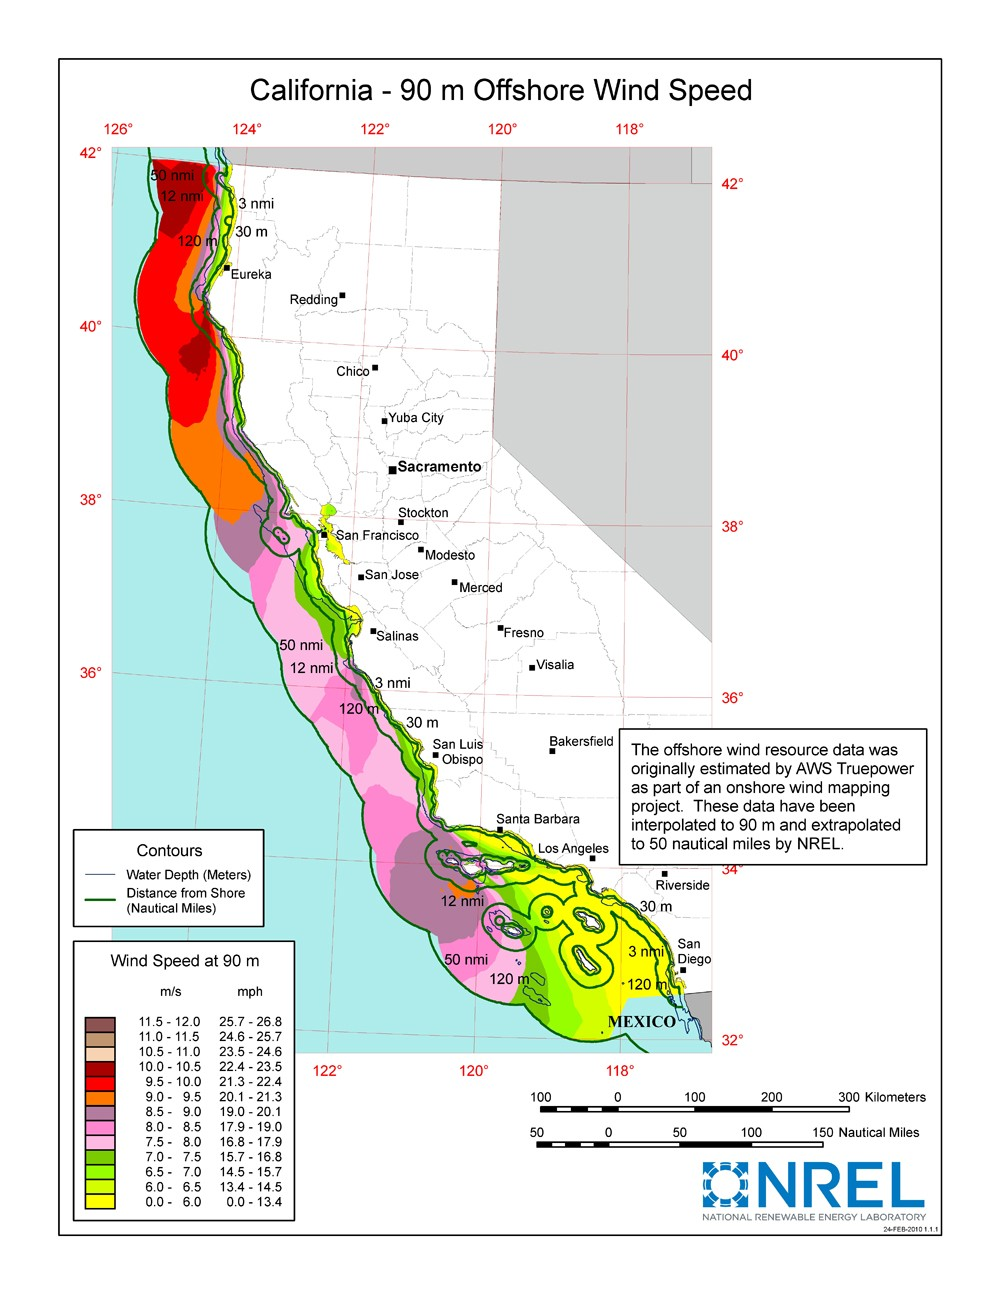 A map of California showing offshore wind speeds.